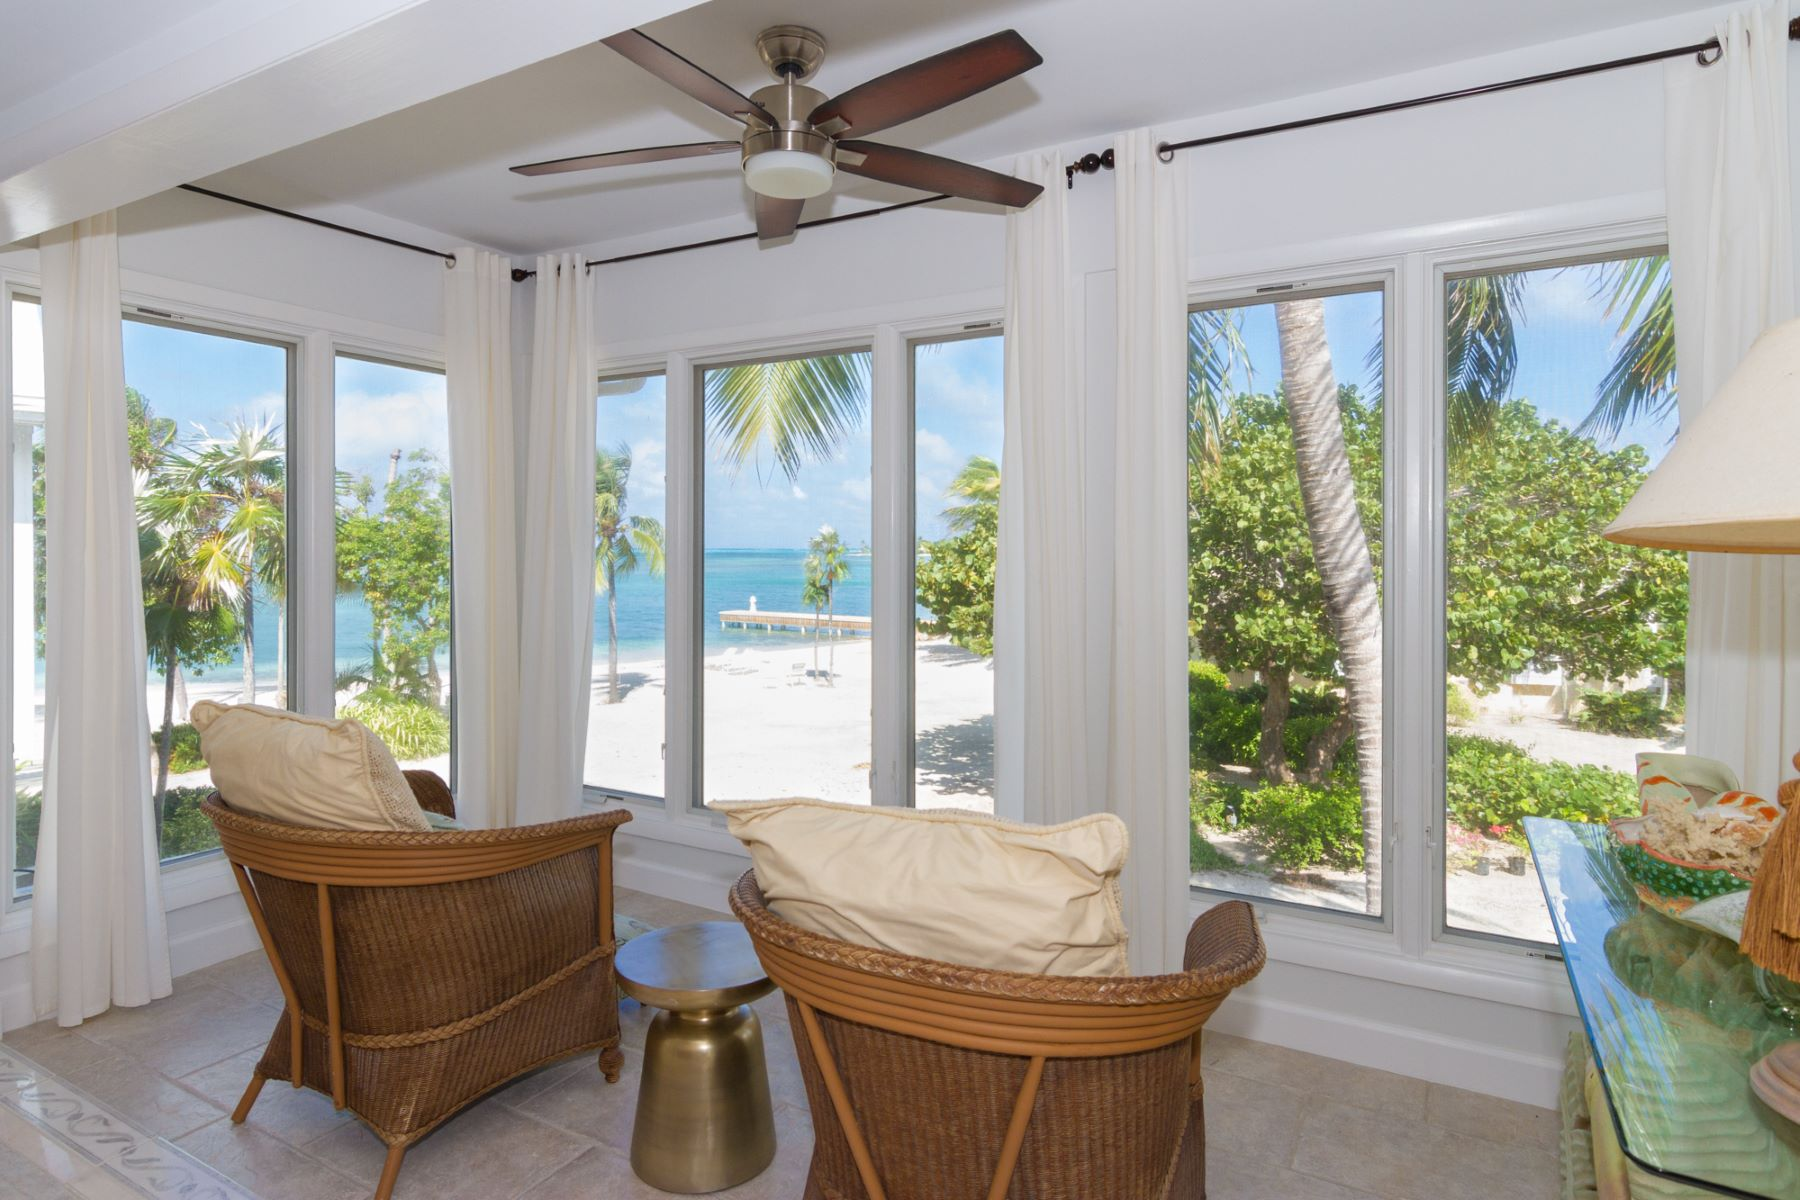 Additional photo for property listing at Gardens of the Kai #5 Rum Point,  Cayman Islands